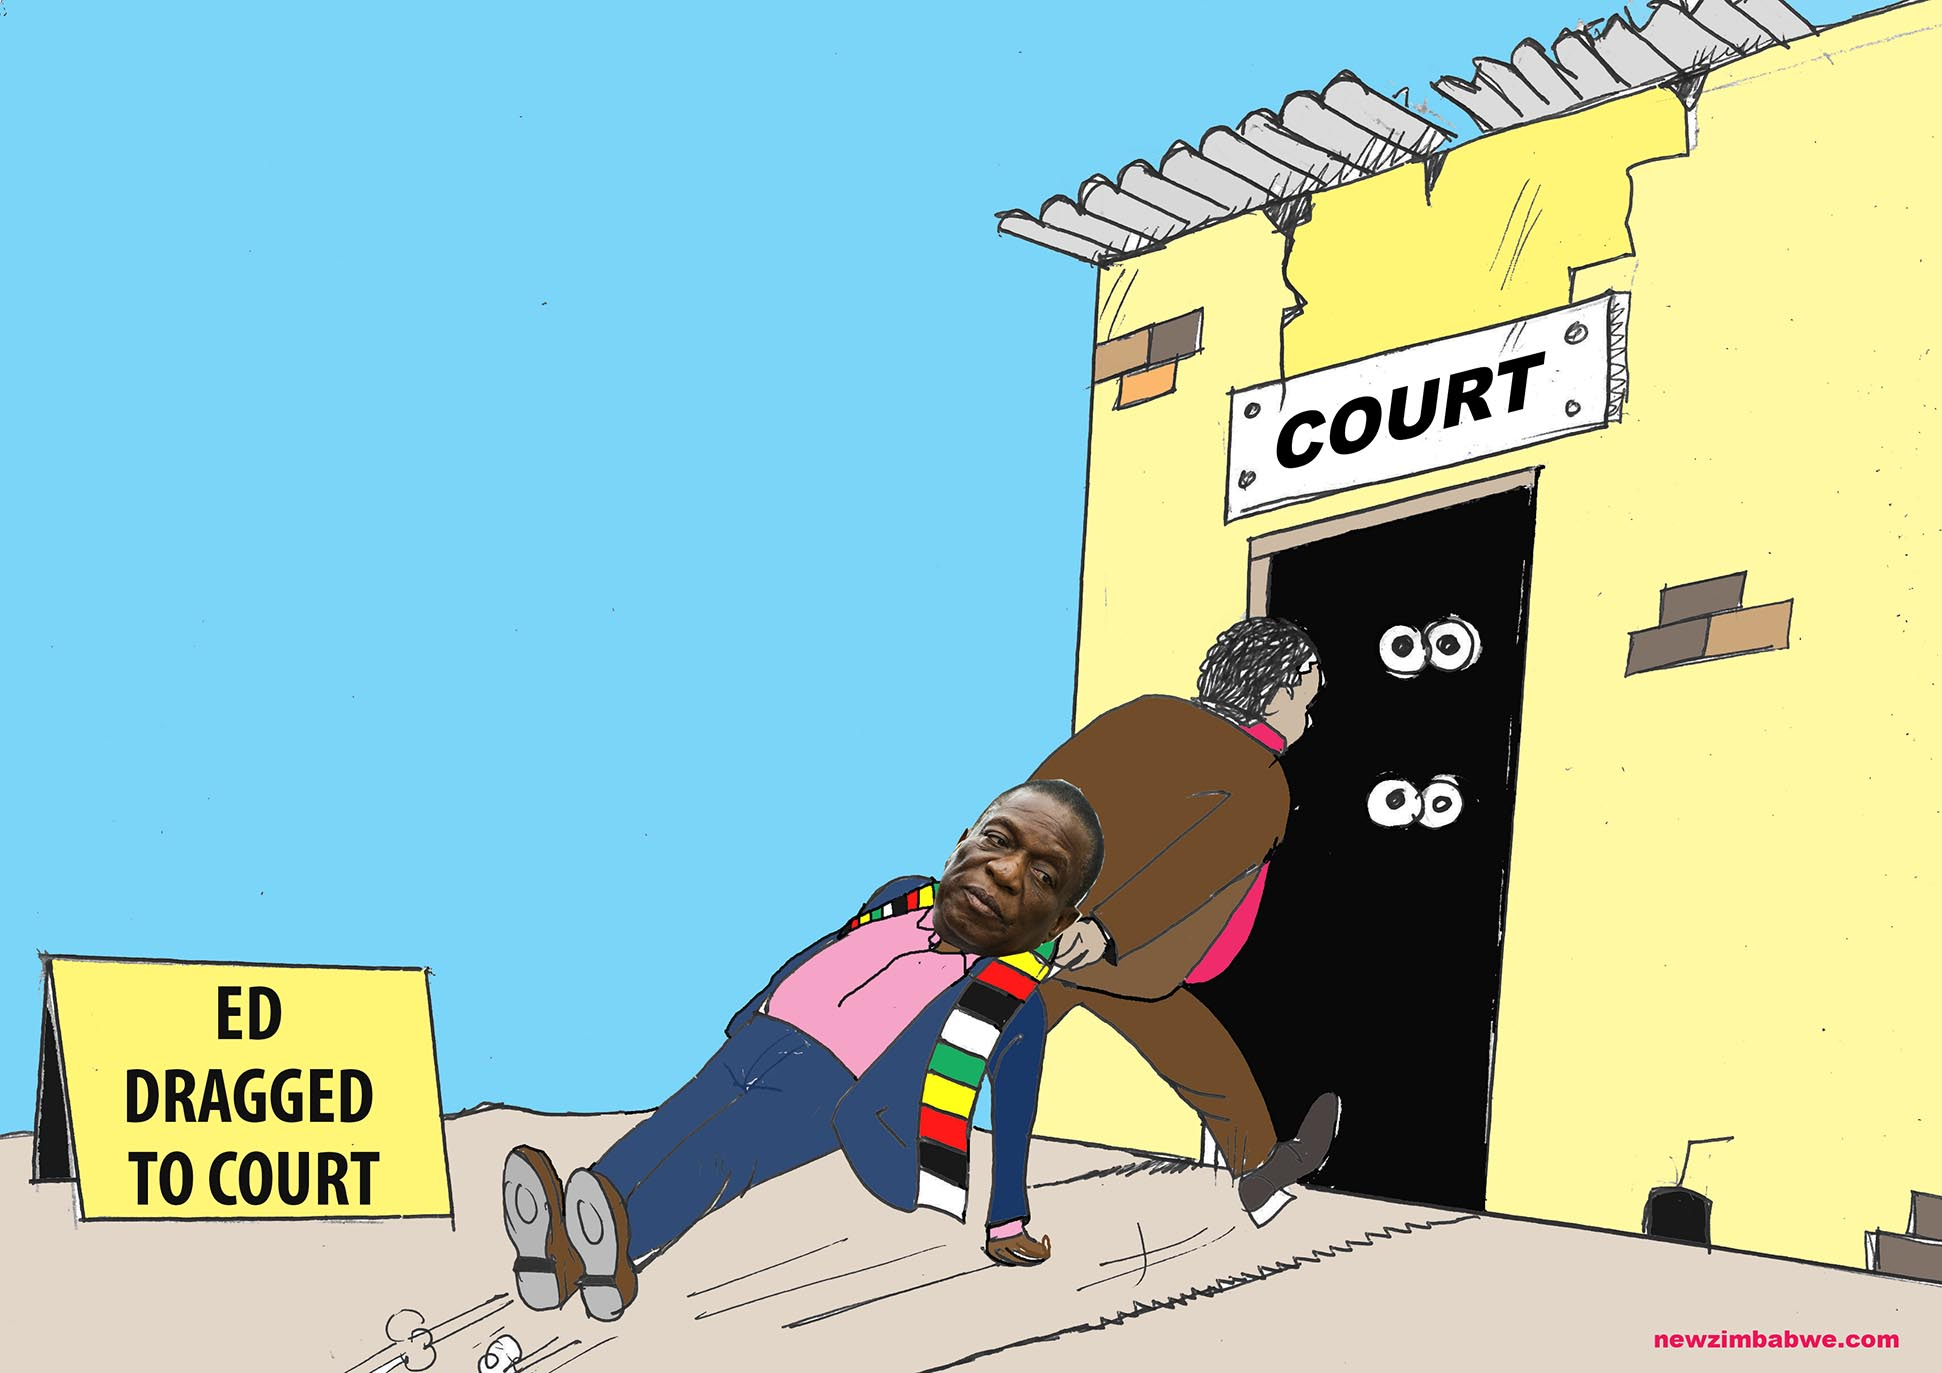 ED dragged to court